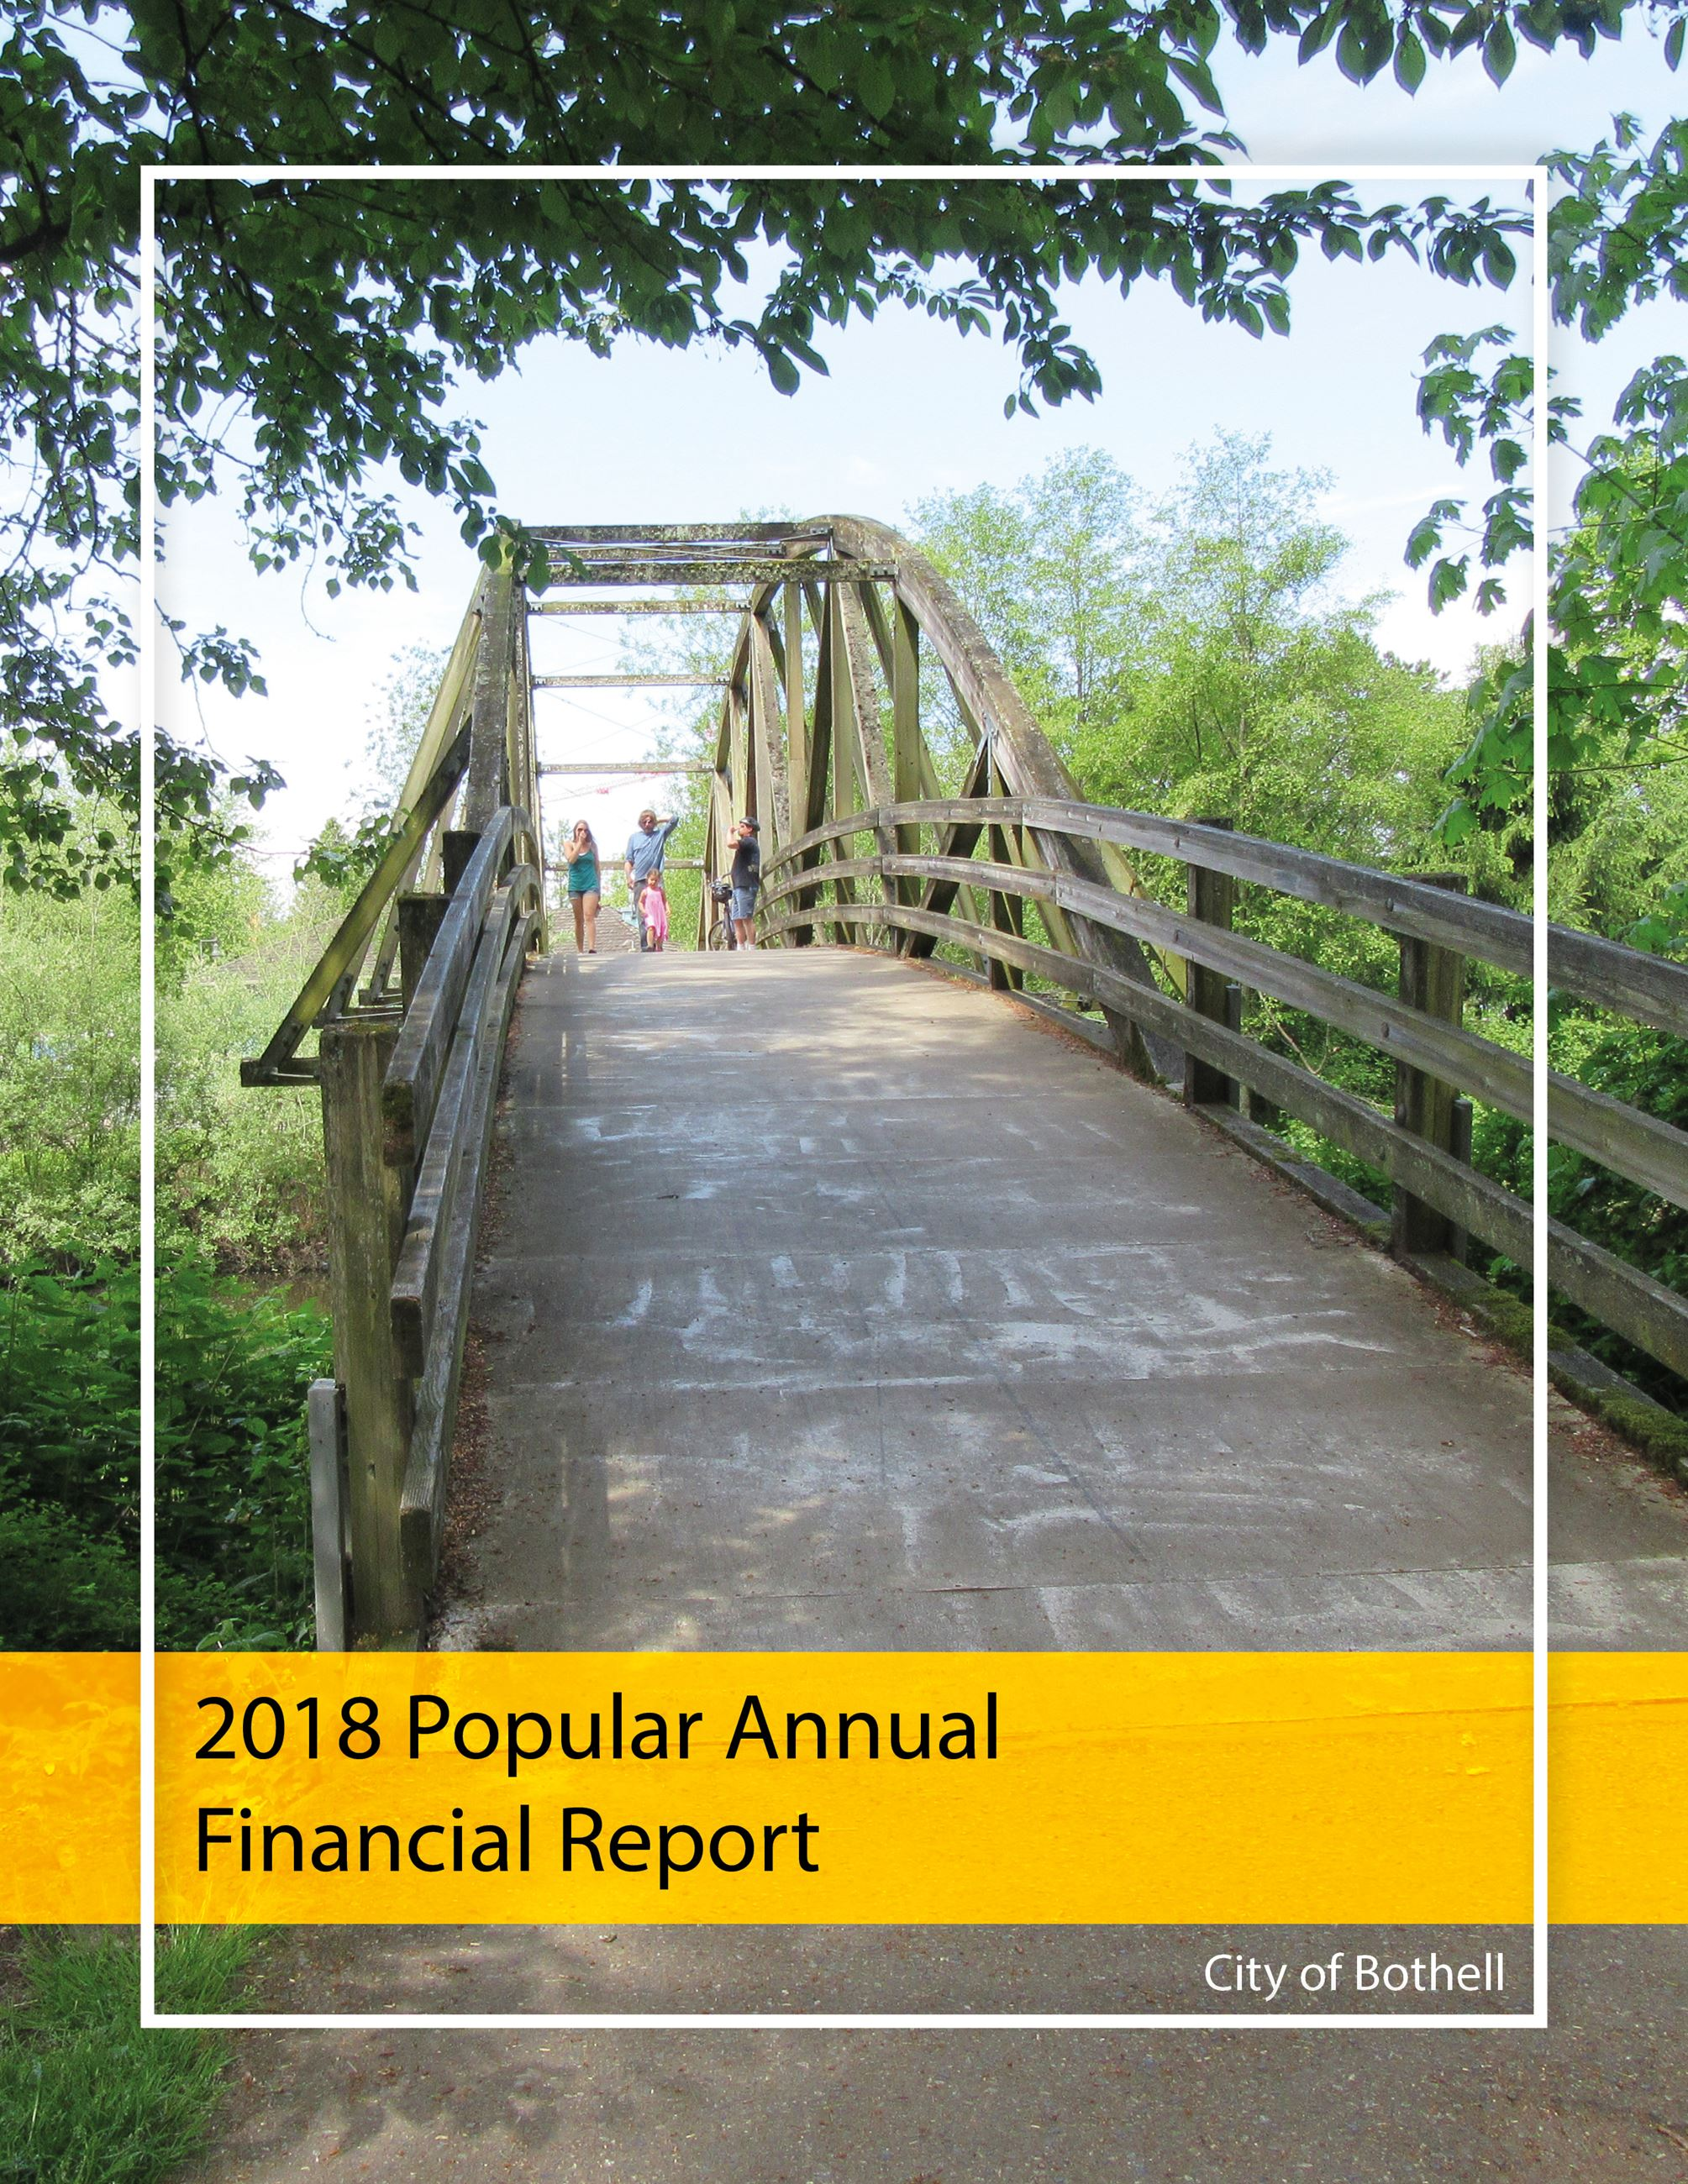 2018 Popular Annual Financial Report (PAFR) (PDF)